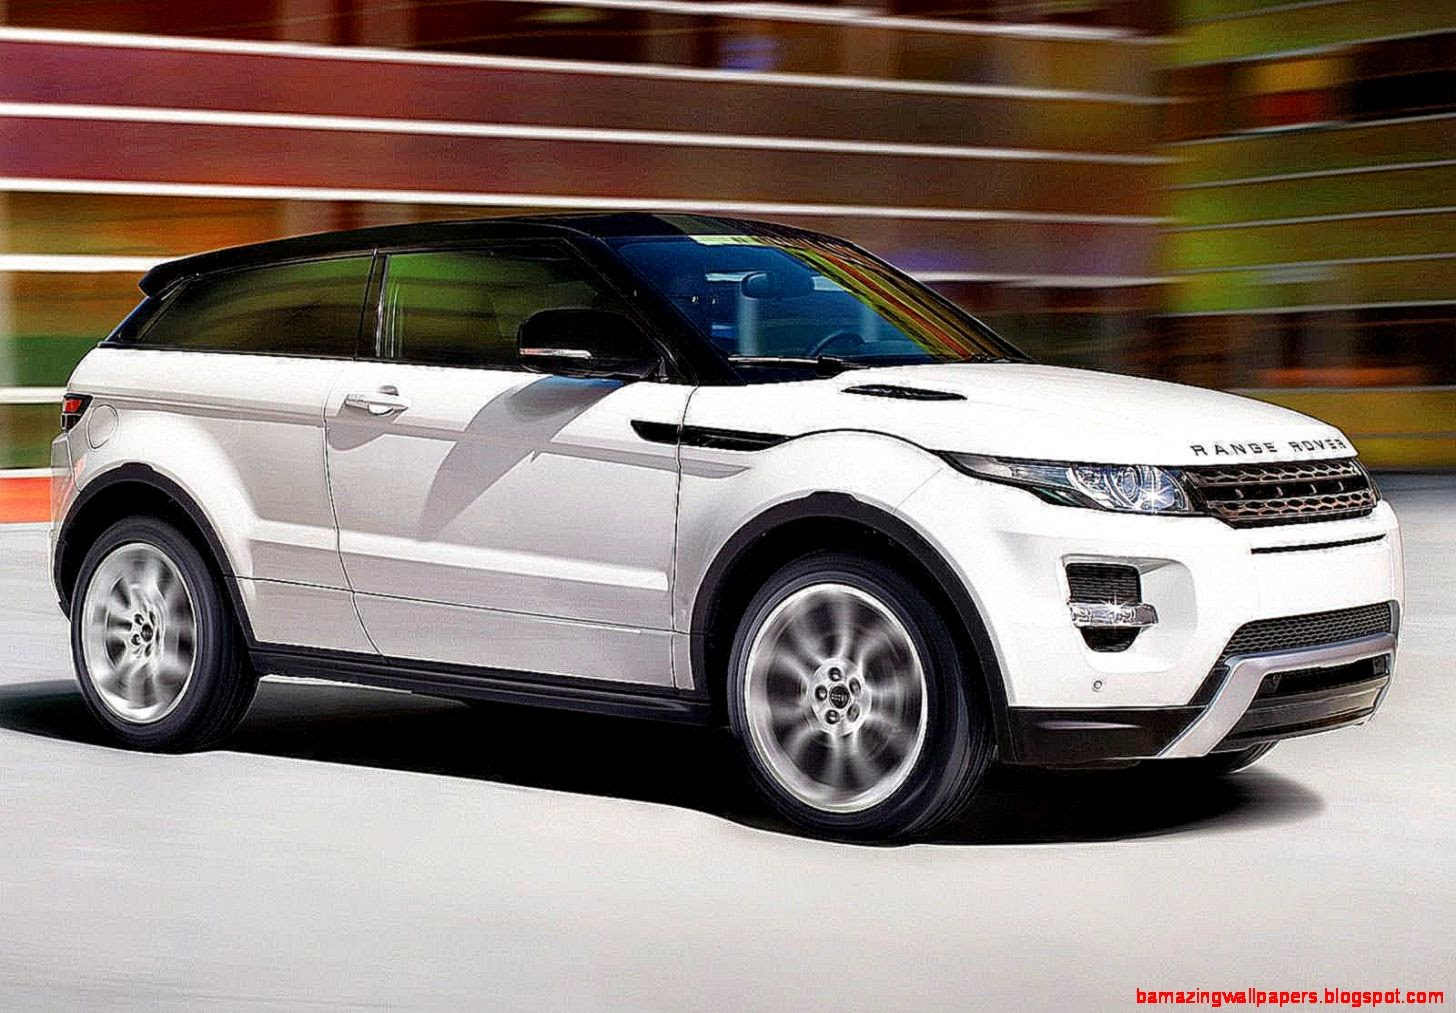 range rover gas mileage amazing wallpapers. Black Bedroom Furniture Sets. Home Design Ideas